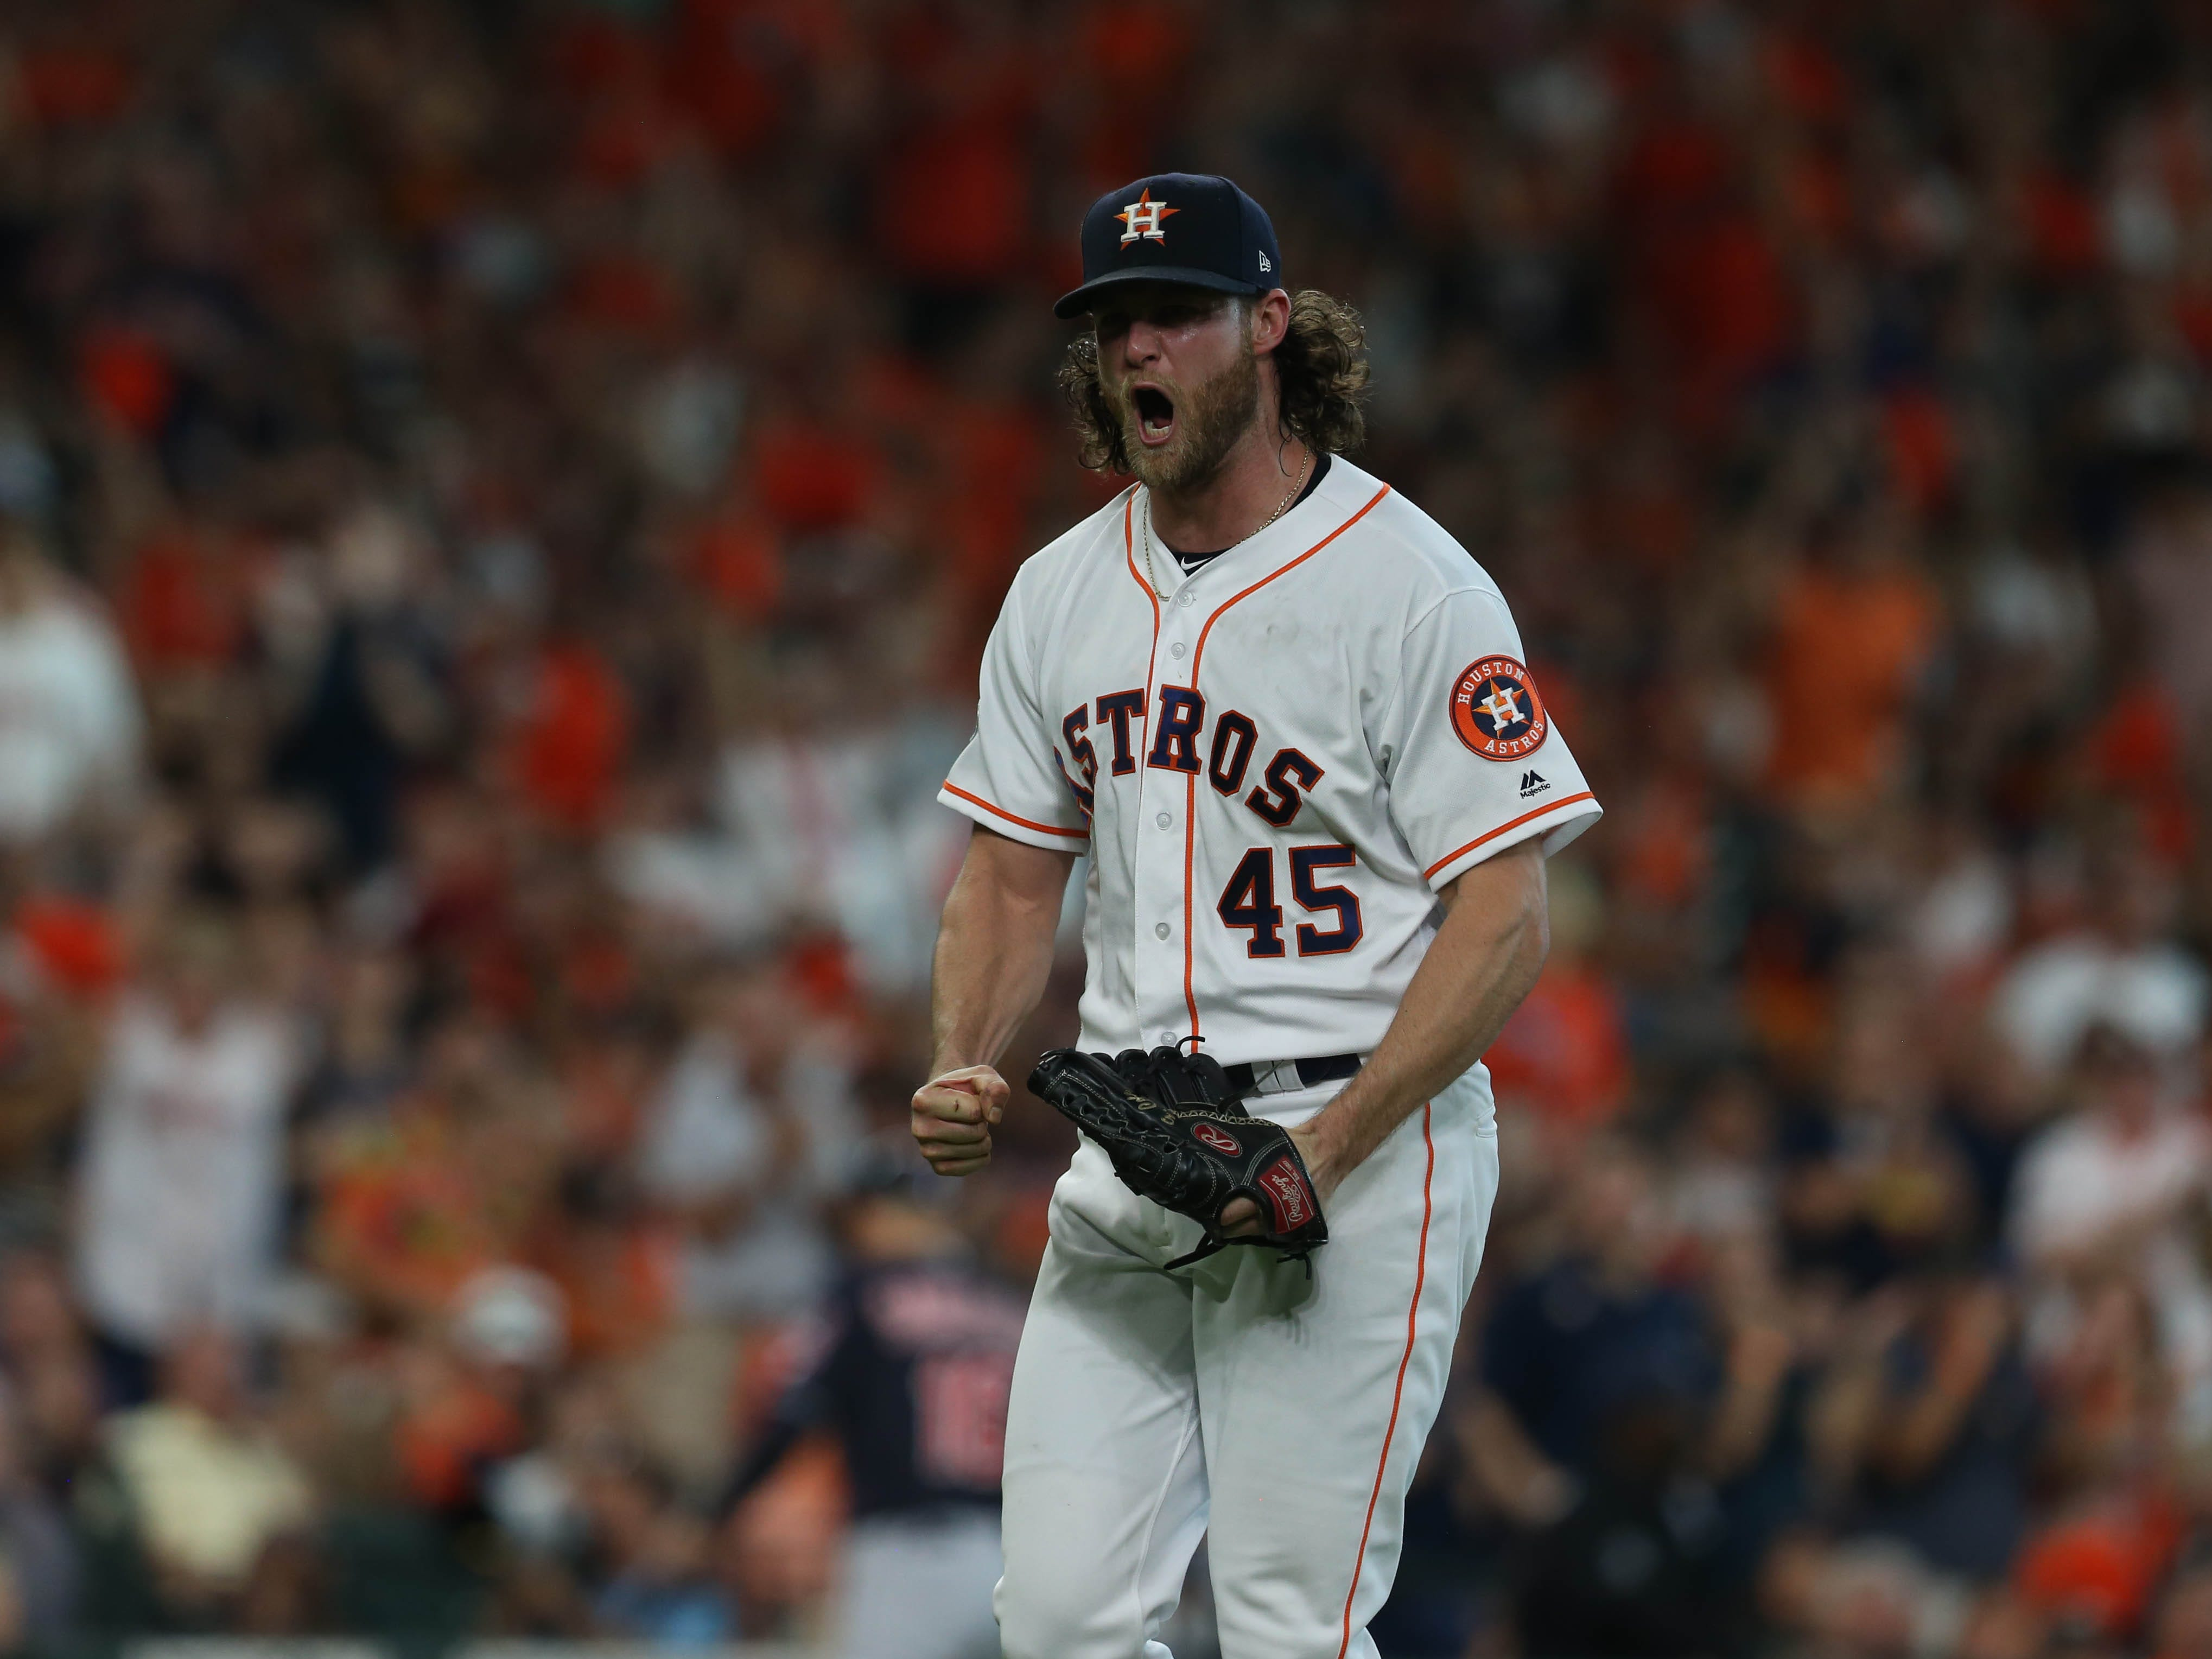 ALDS Game 2: Astros starting pitcher Gerrit Cole reacts after striking out the last batter in the sixth inning.